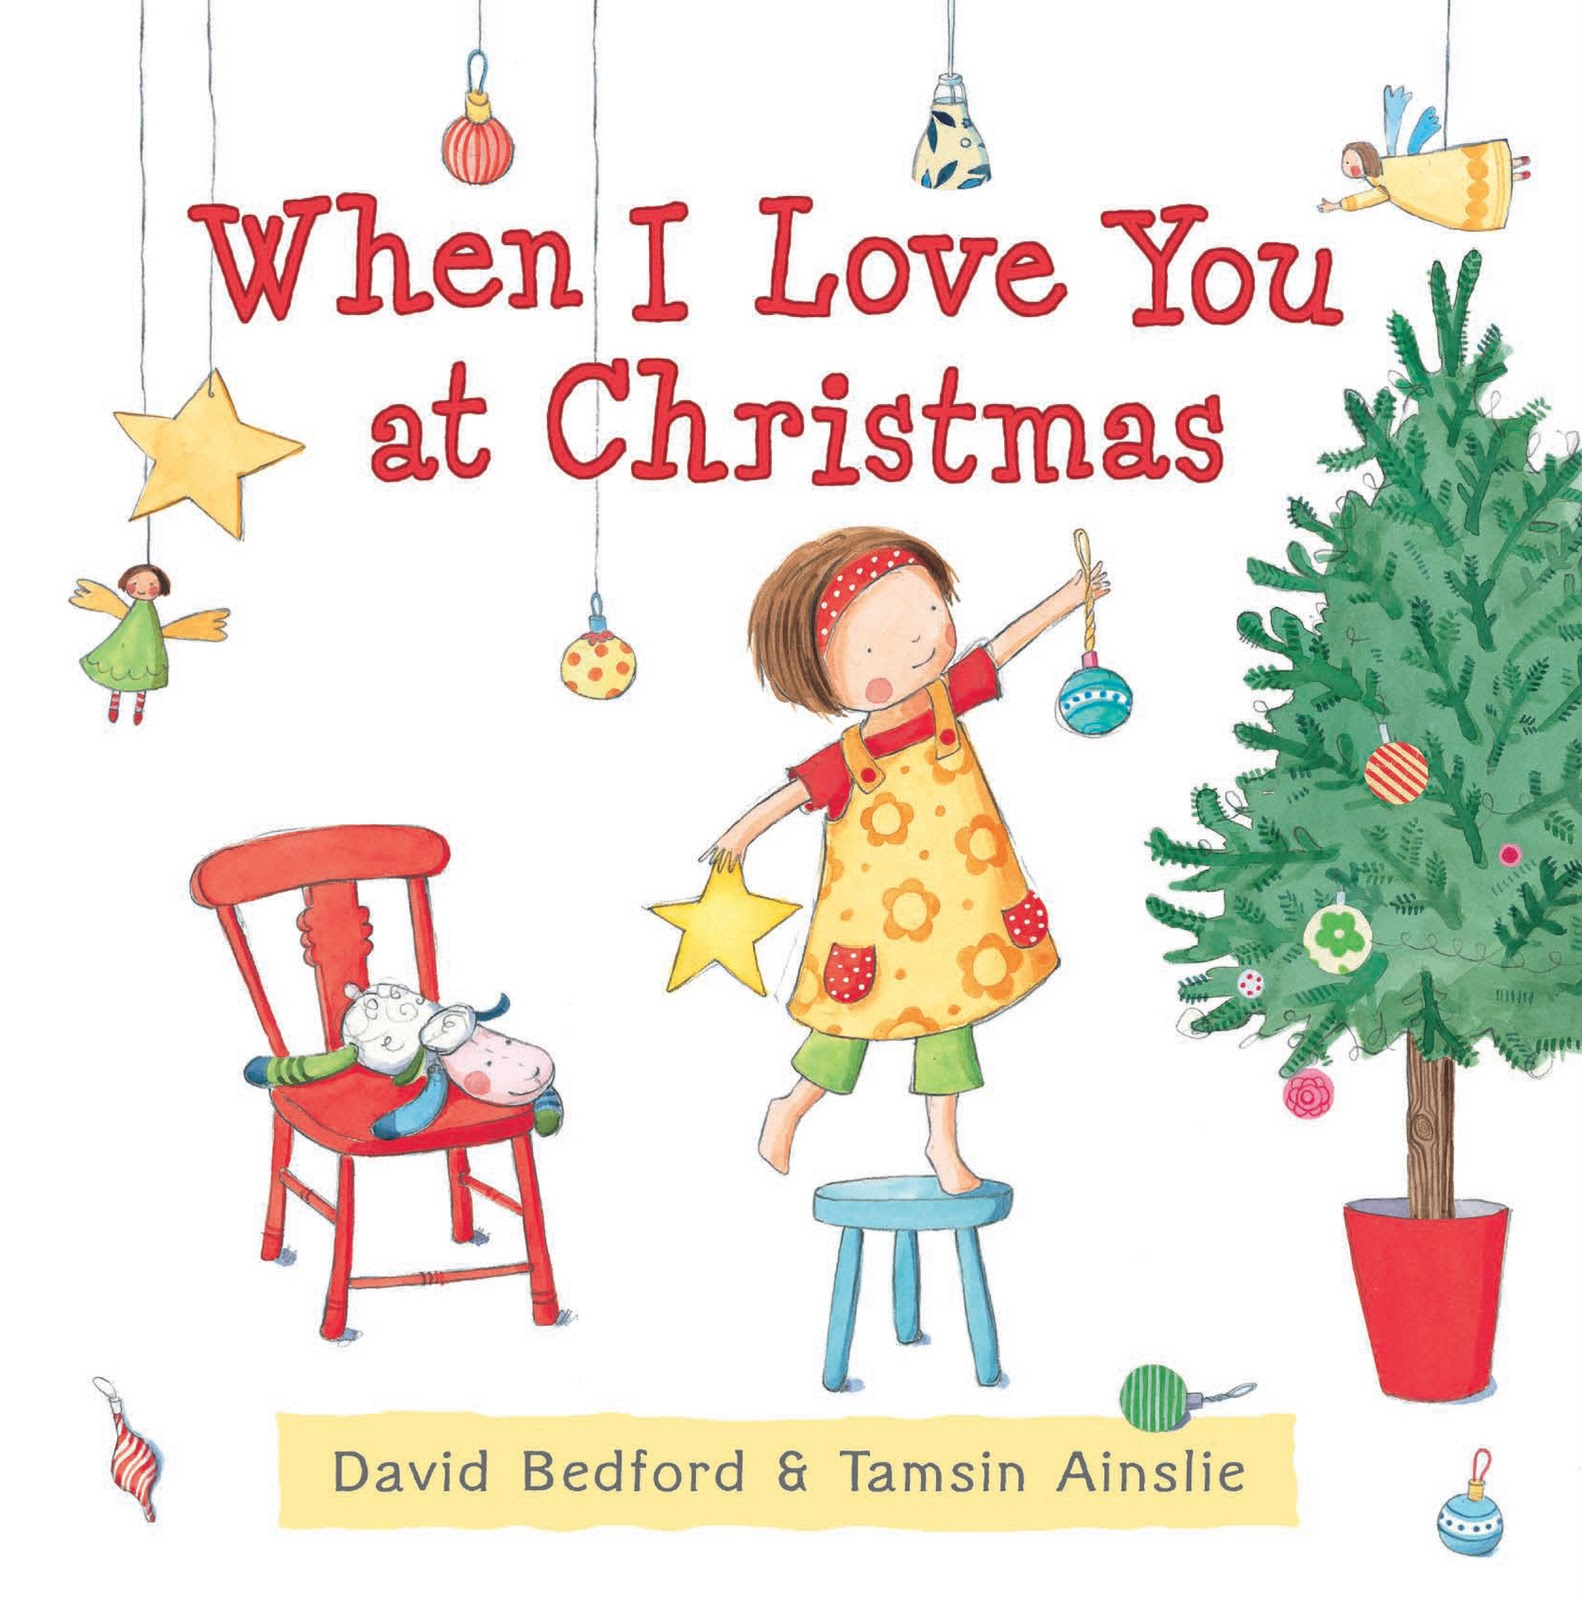 Christmas Books | The Blog of Everything